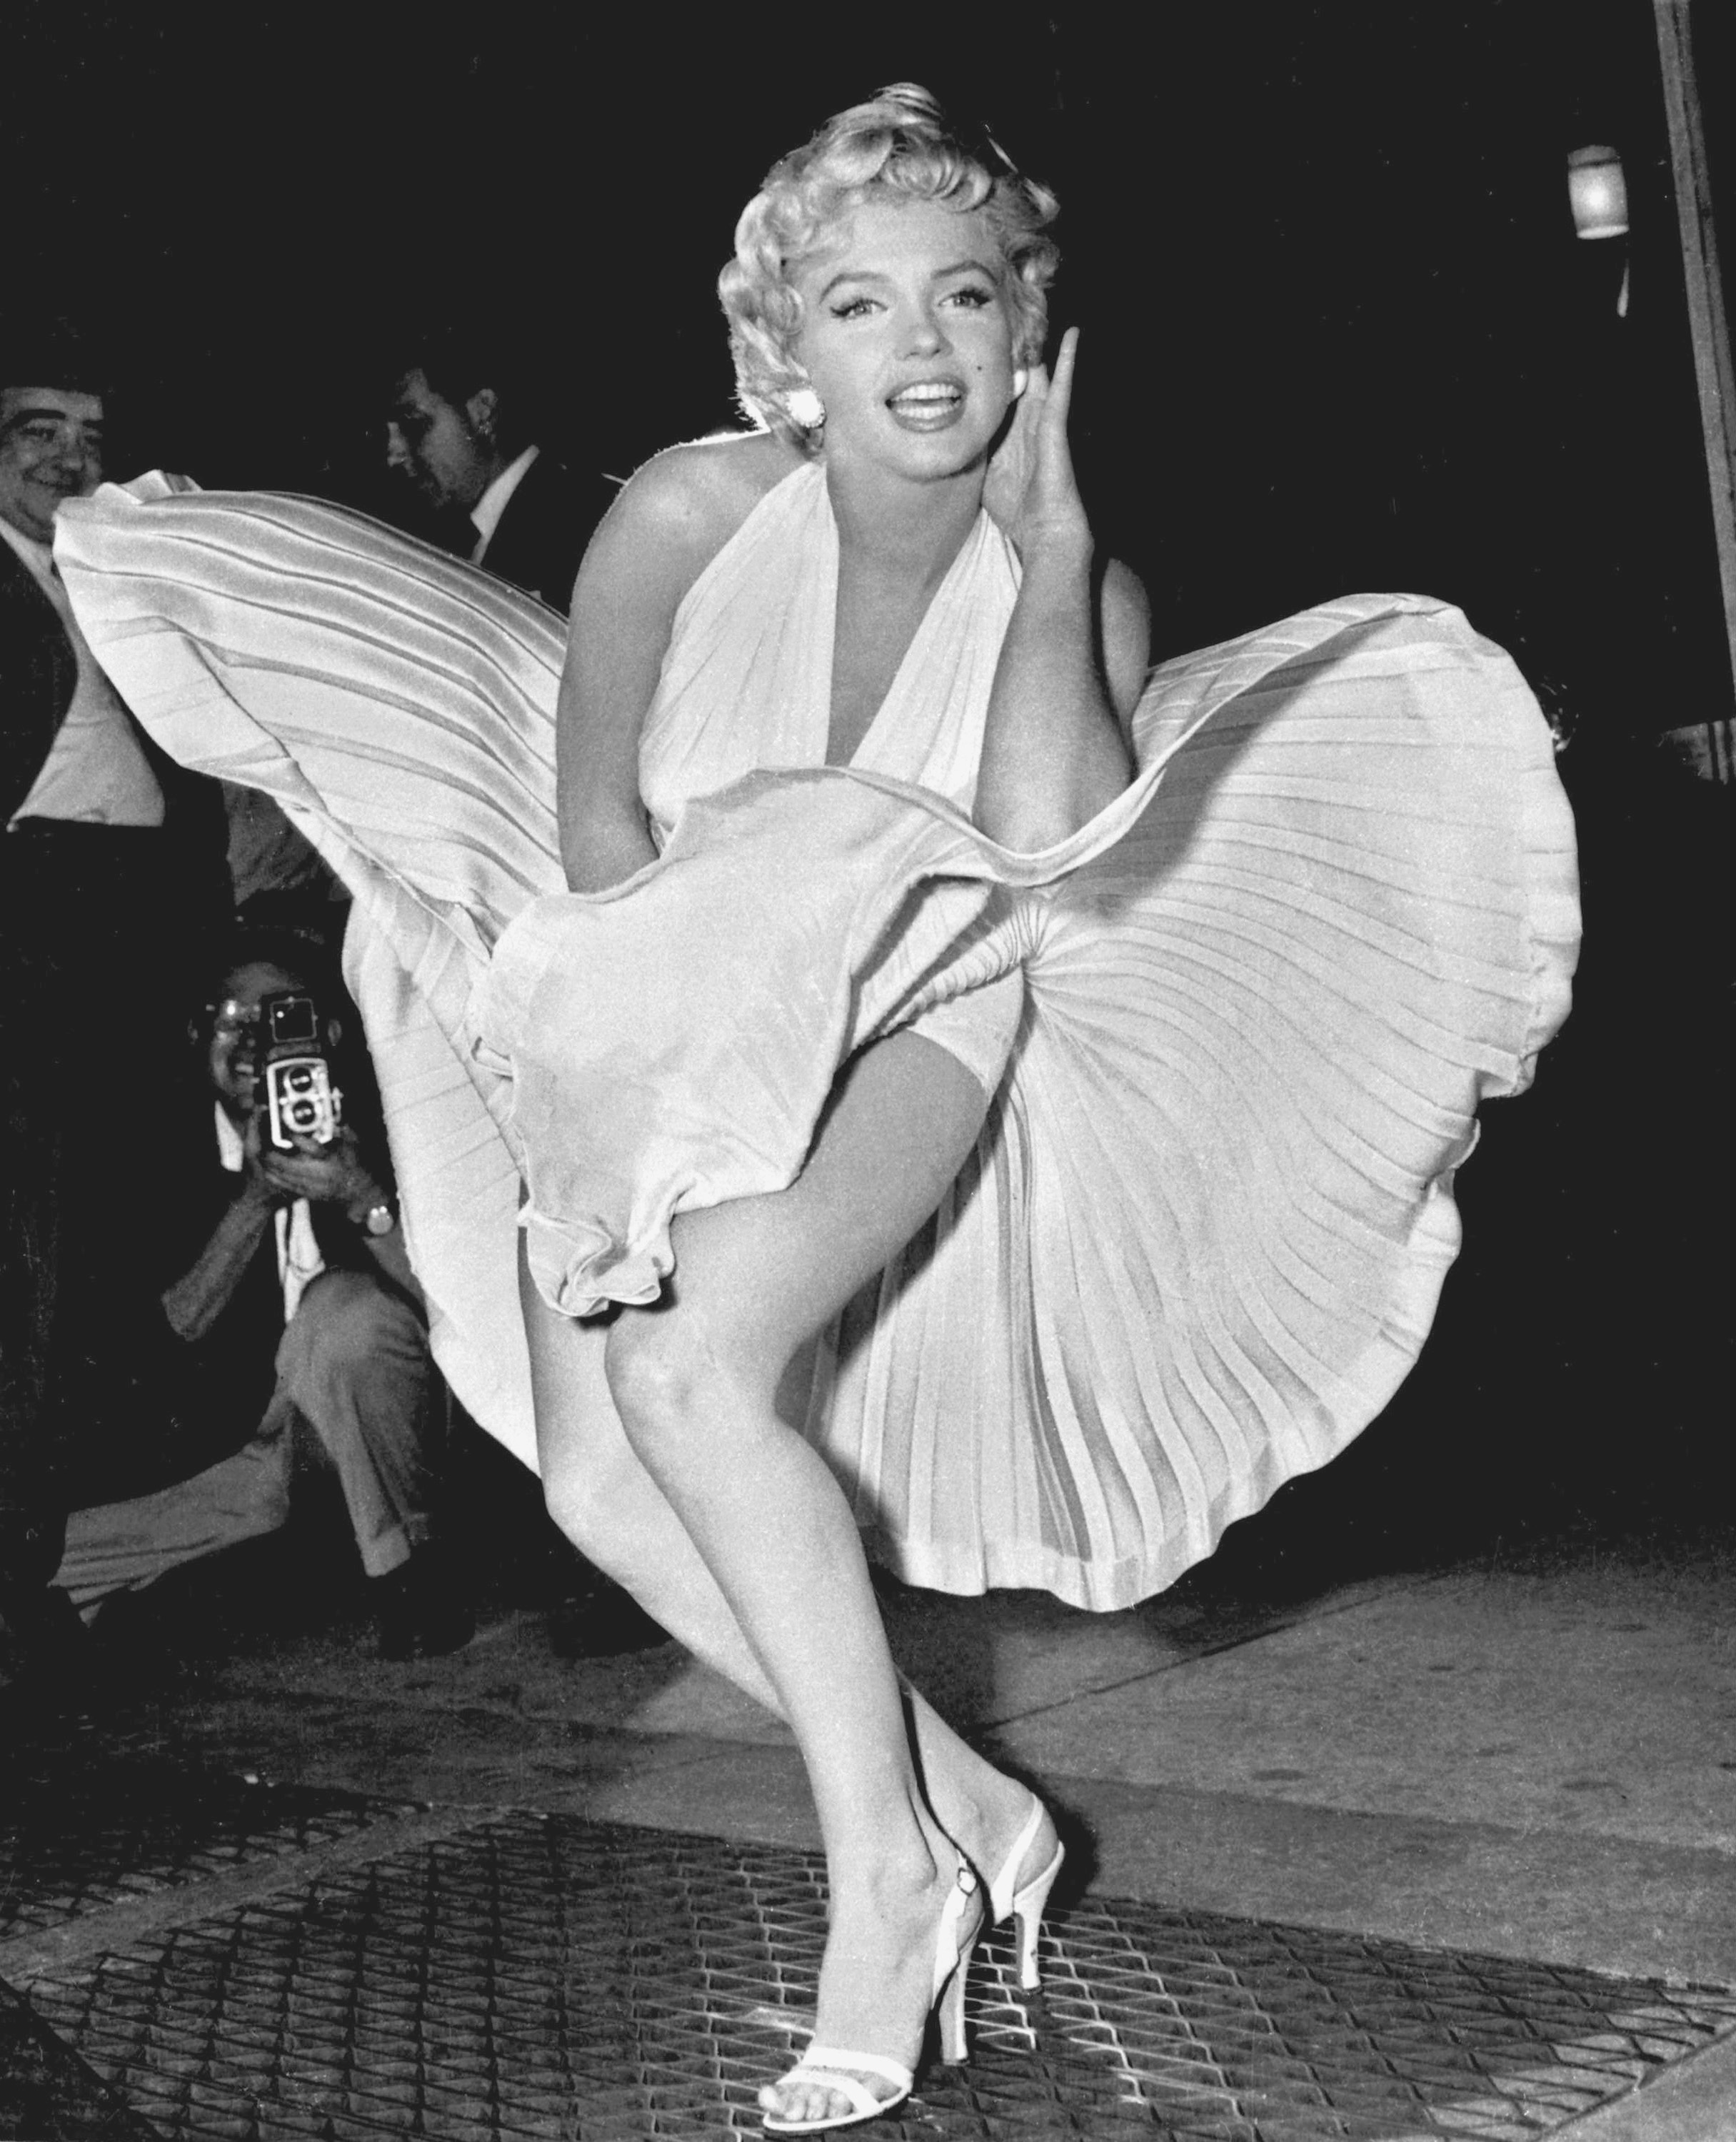 Marilyn Monroe poses over the updraft of a New York subway grating while in character for the filming of 'The Seven Year Itch' in Manhattan on Sept. 15, 1954.